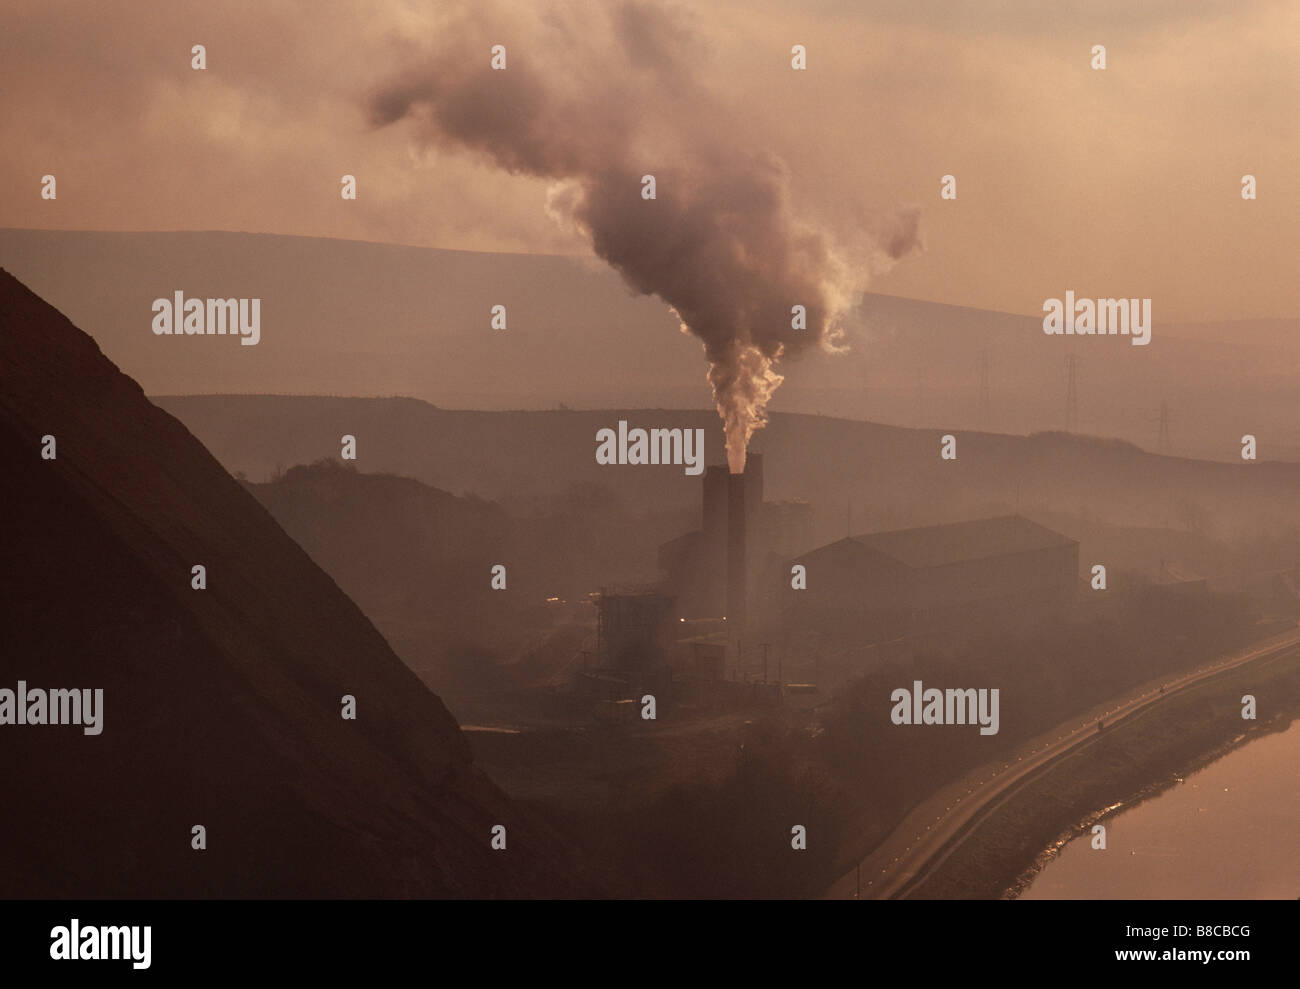 Pollutant Emission Stock Photos Amp Pollutant Emission Stock